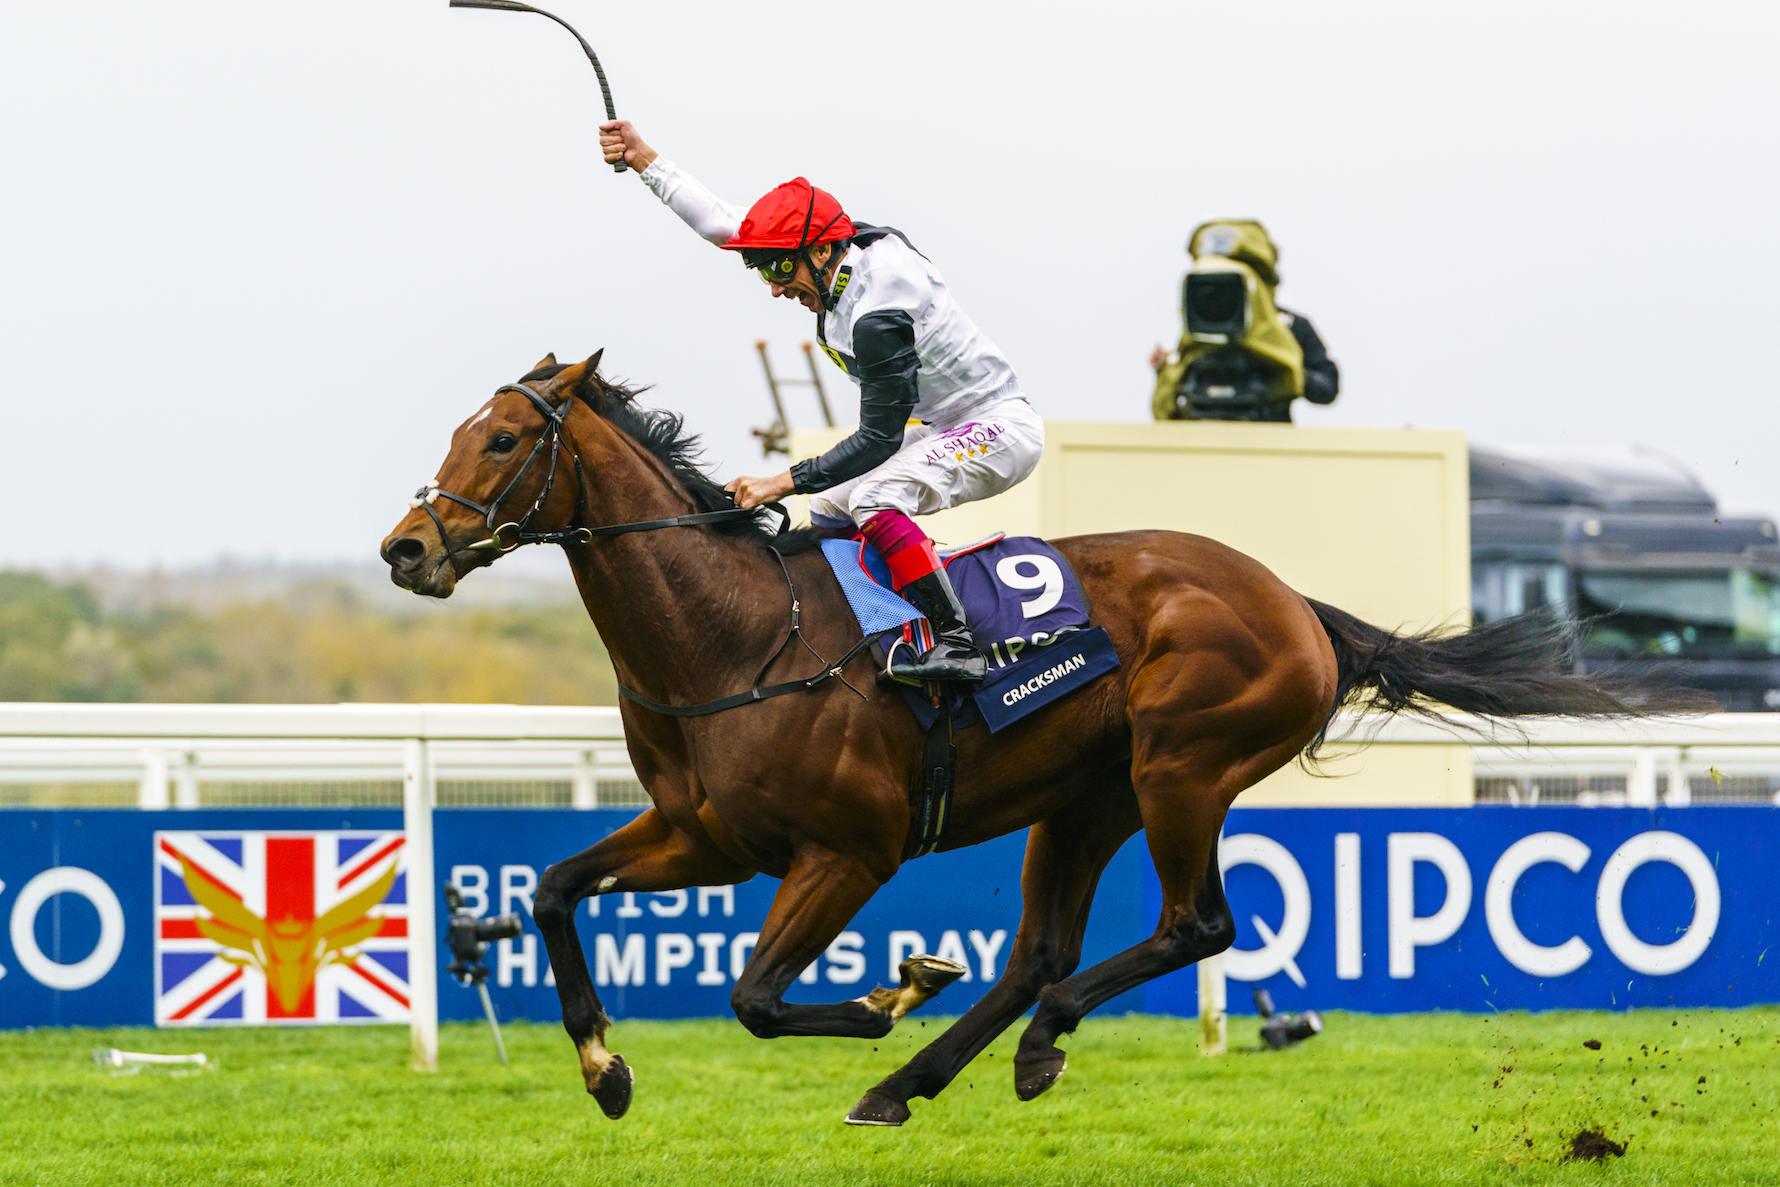 Remarkable spectacle: Cracksman produced the highest-rated performance in Europe last season in the Qipco Champion Stakes